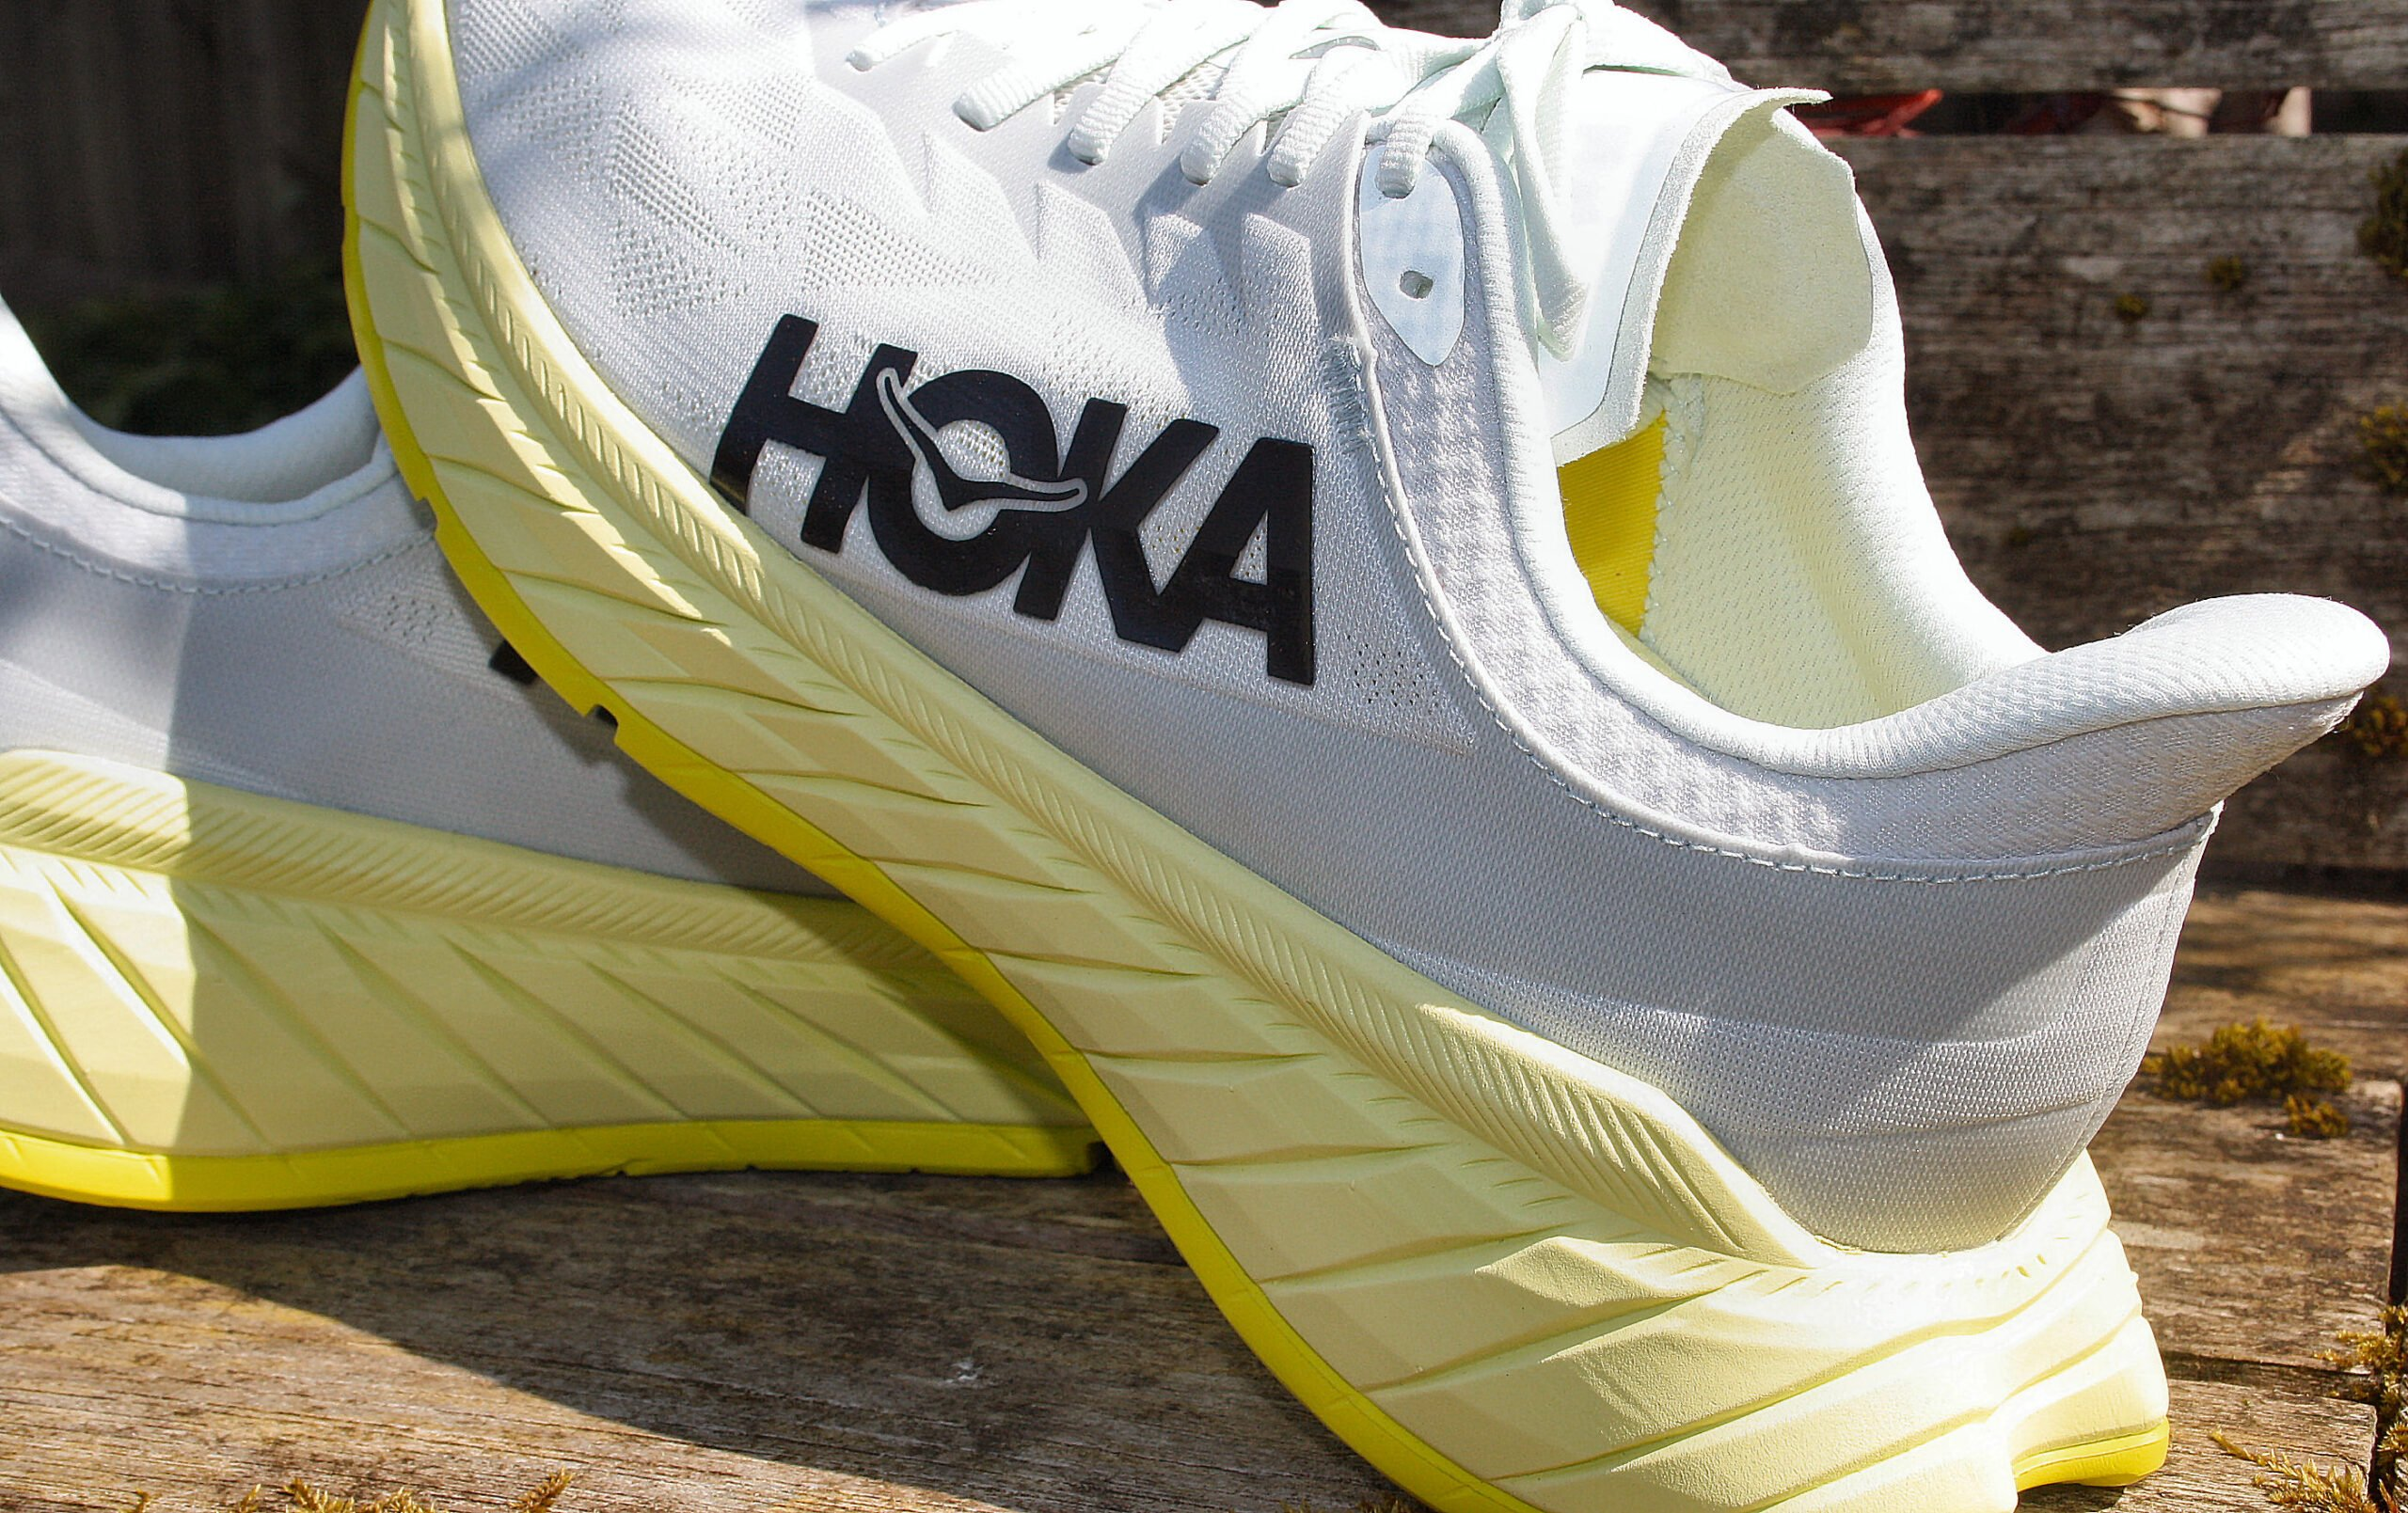 Hoka Hoka One Carbon X2 side rear view and peak inside Review